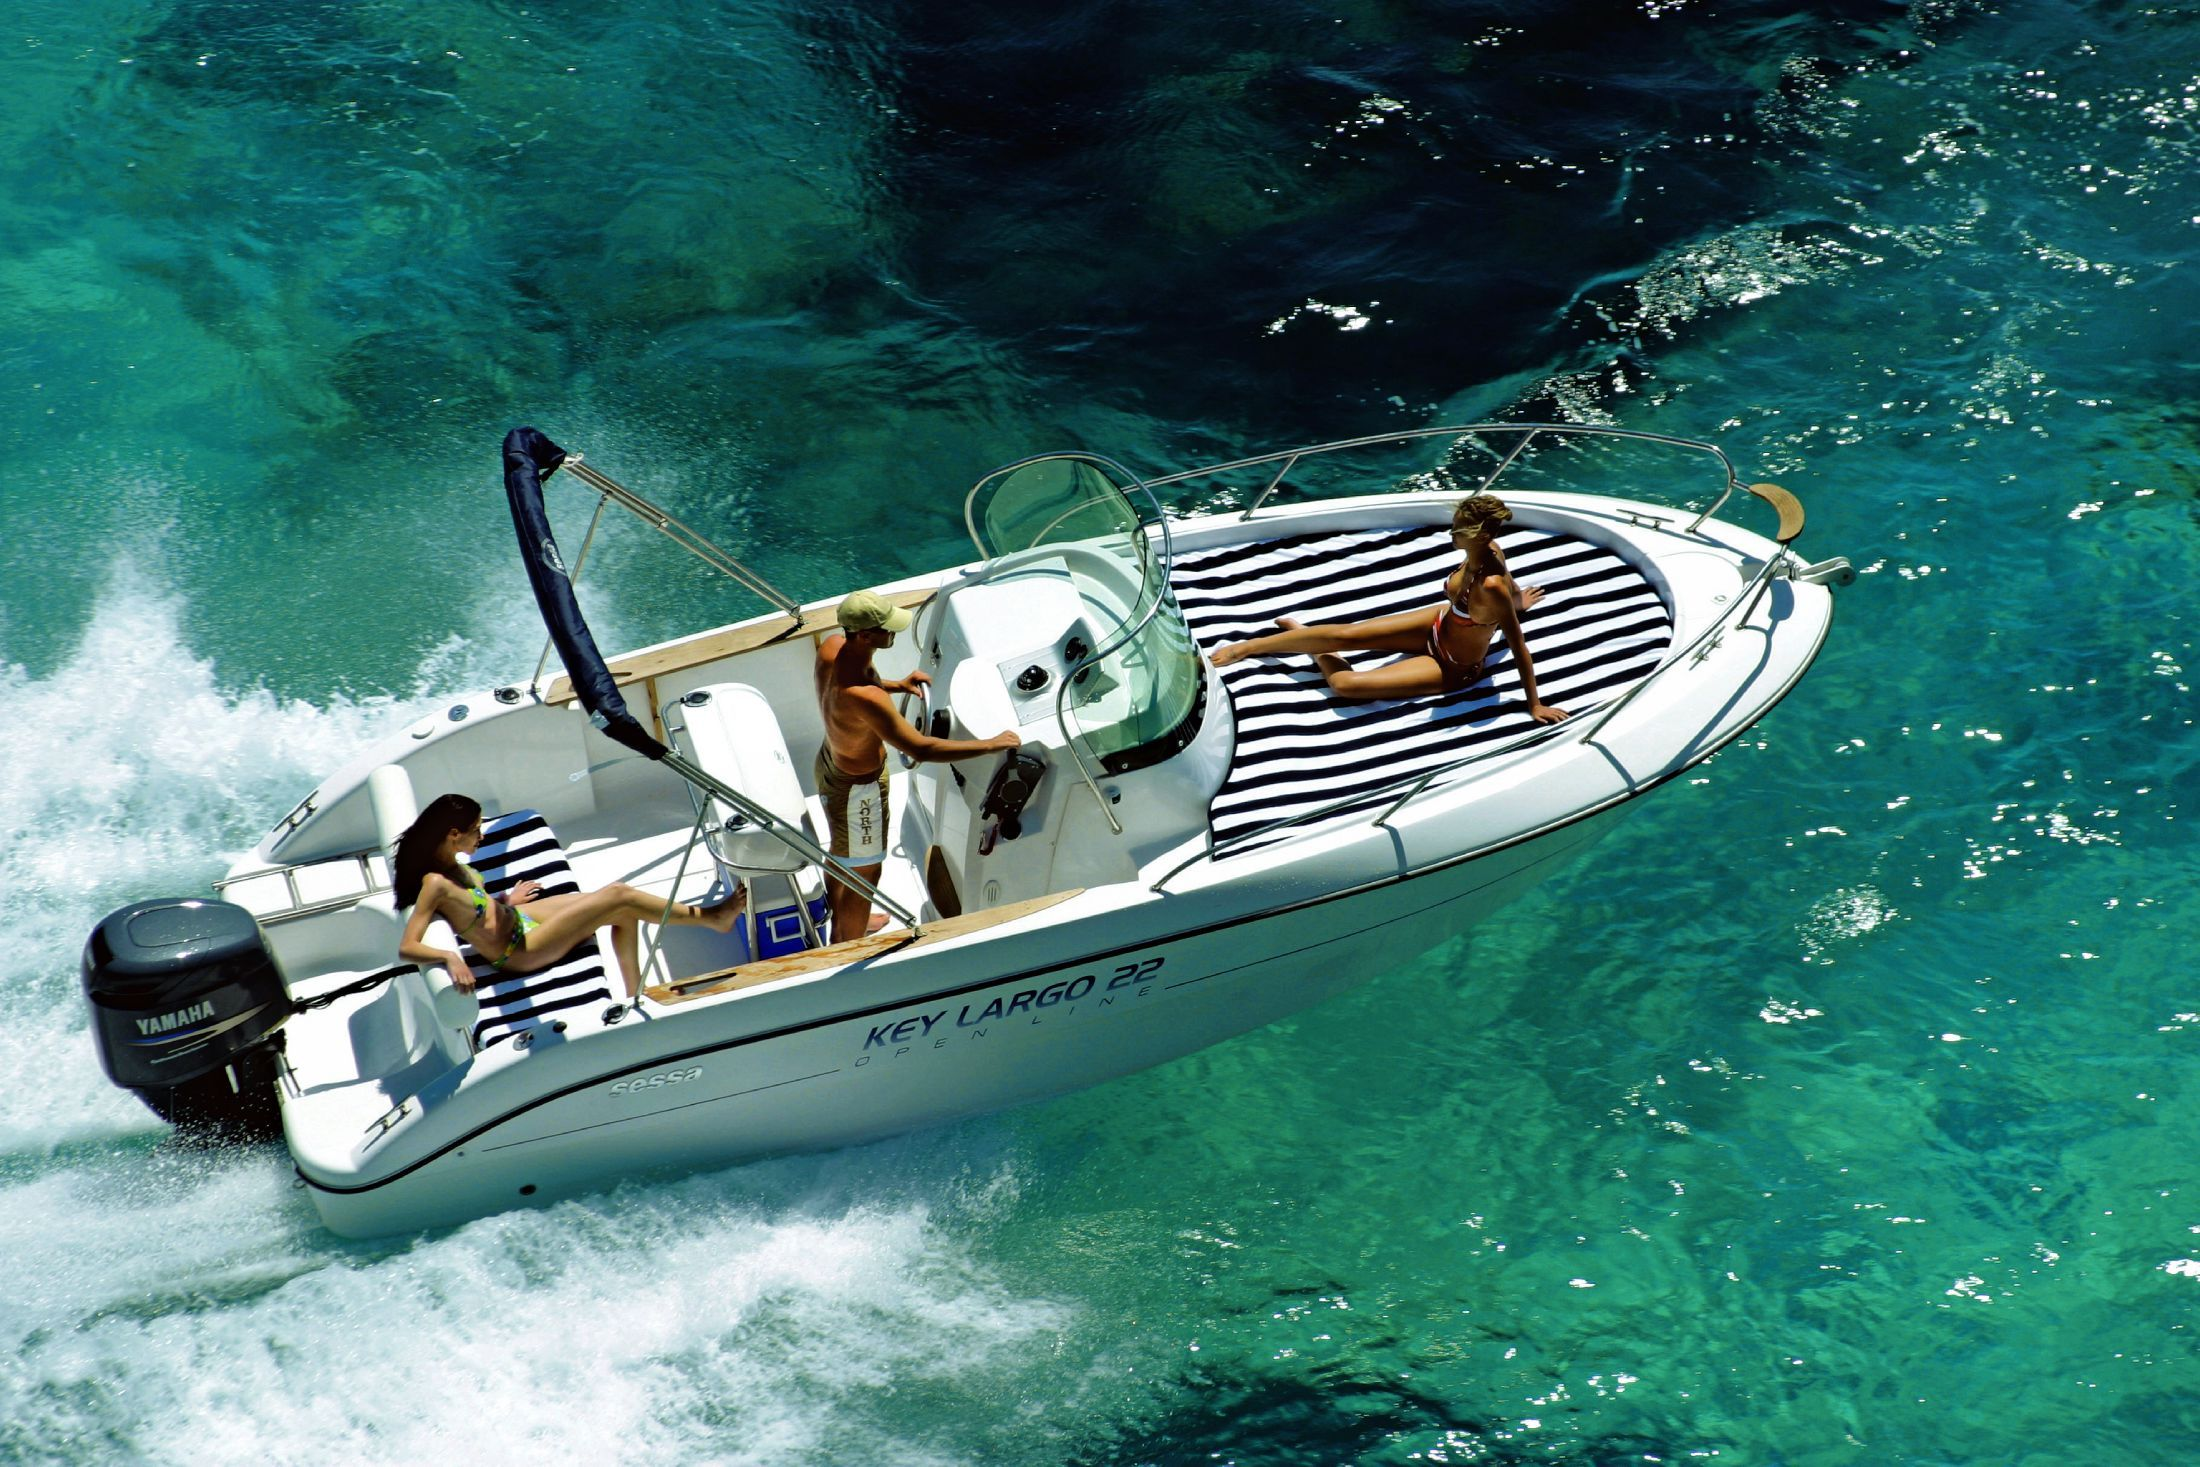 2018 sessa marine key largo 22 power new and used boats for. Black Bedroom Furniture Sets. Home Design Ideas